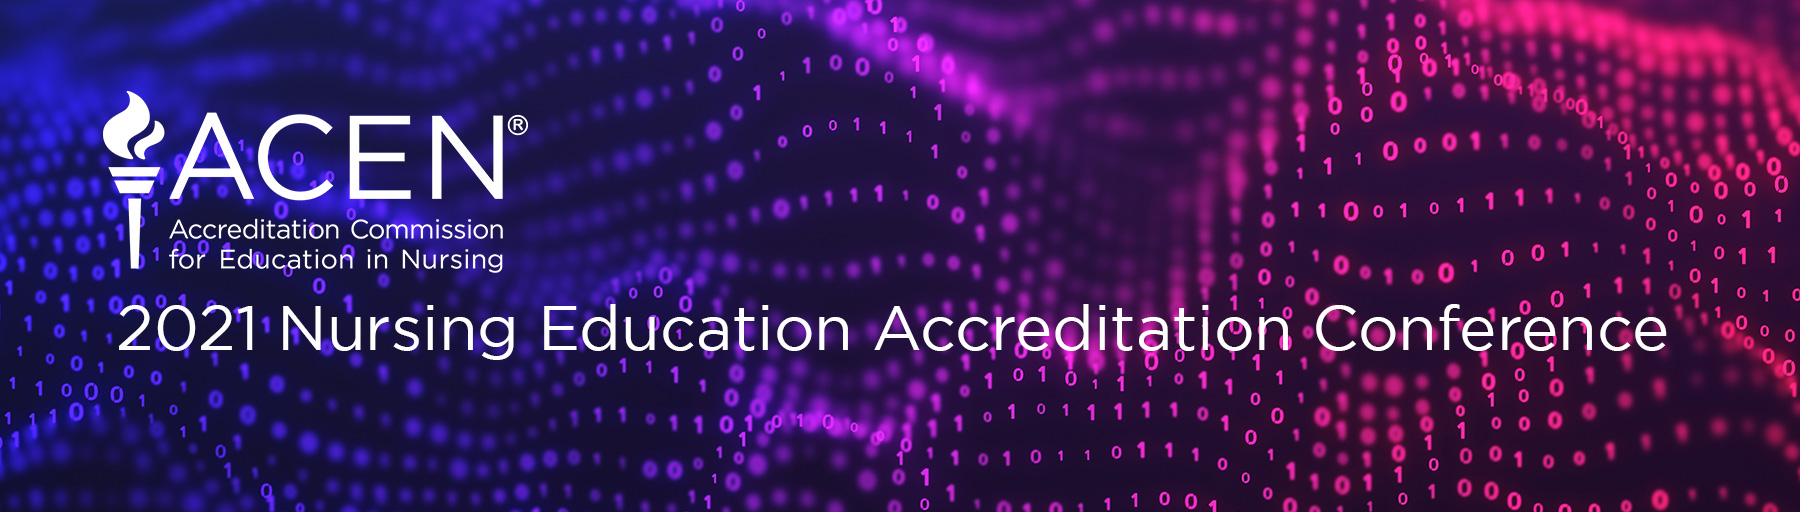 ACEN Annual Nursing Education Accreditation Conference